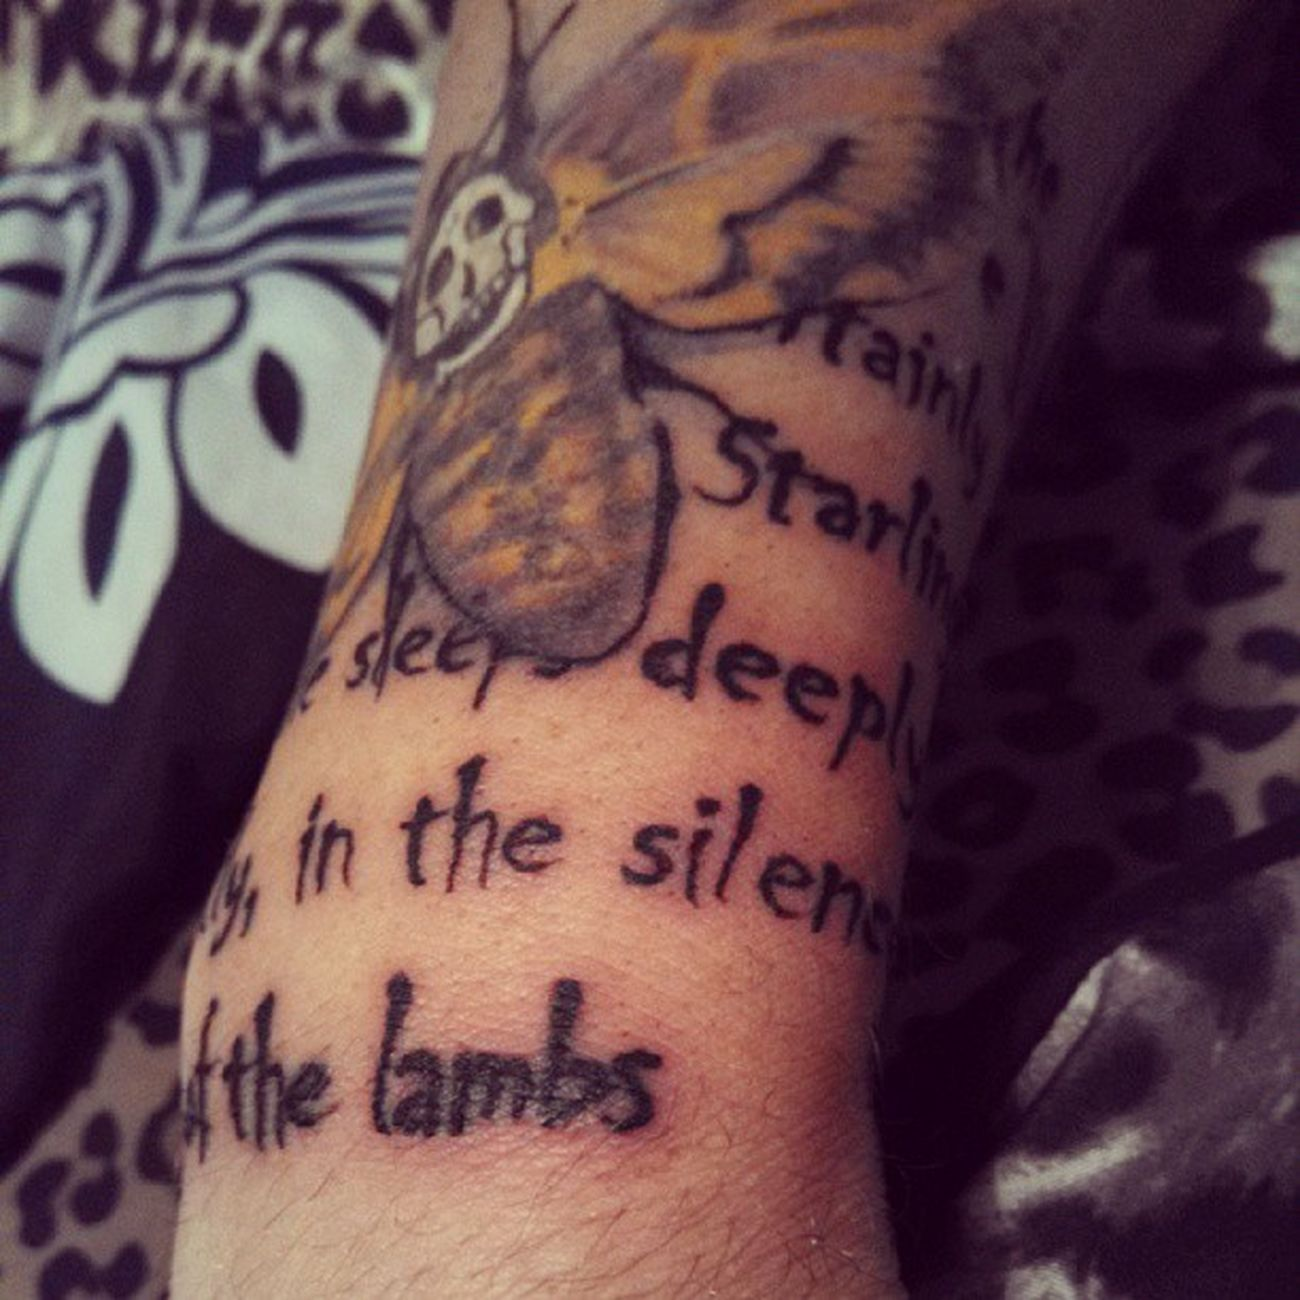 with the quote behind it.. Tattoo Tatted Ink Silenceofthelambs crazyytattoo Clarice starling Hannibal Hollywood crazy sleeve horror film